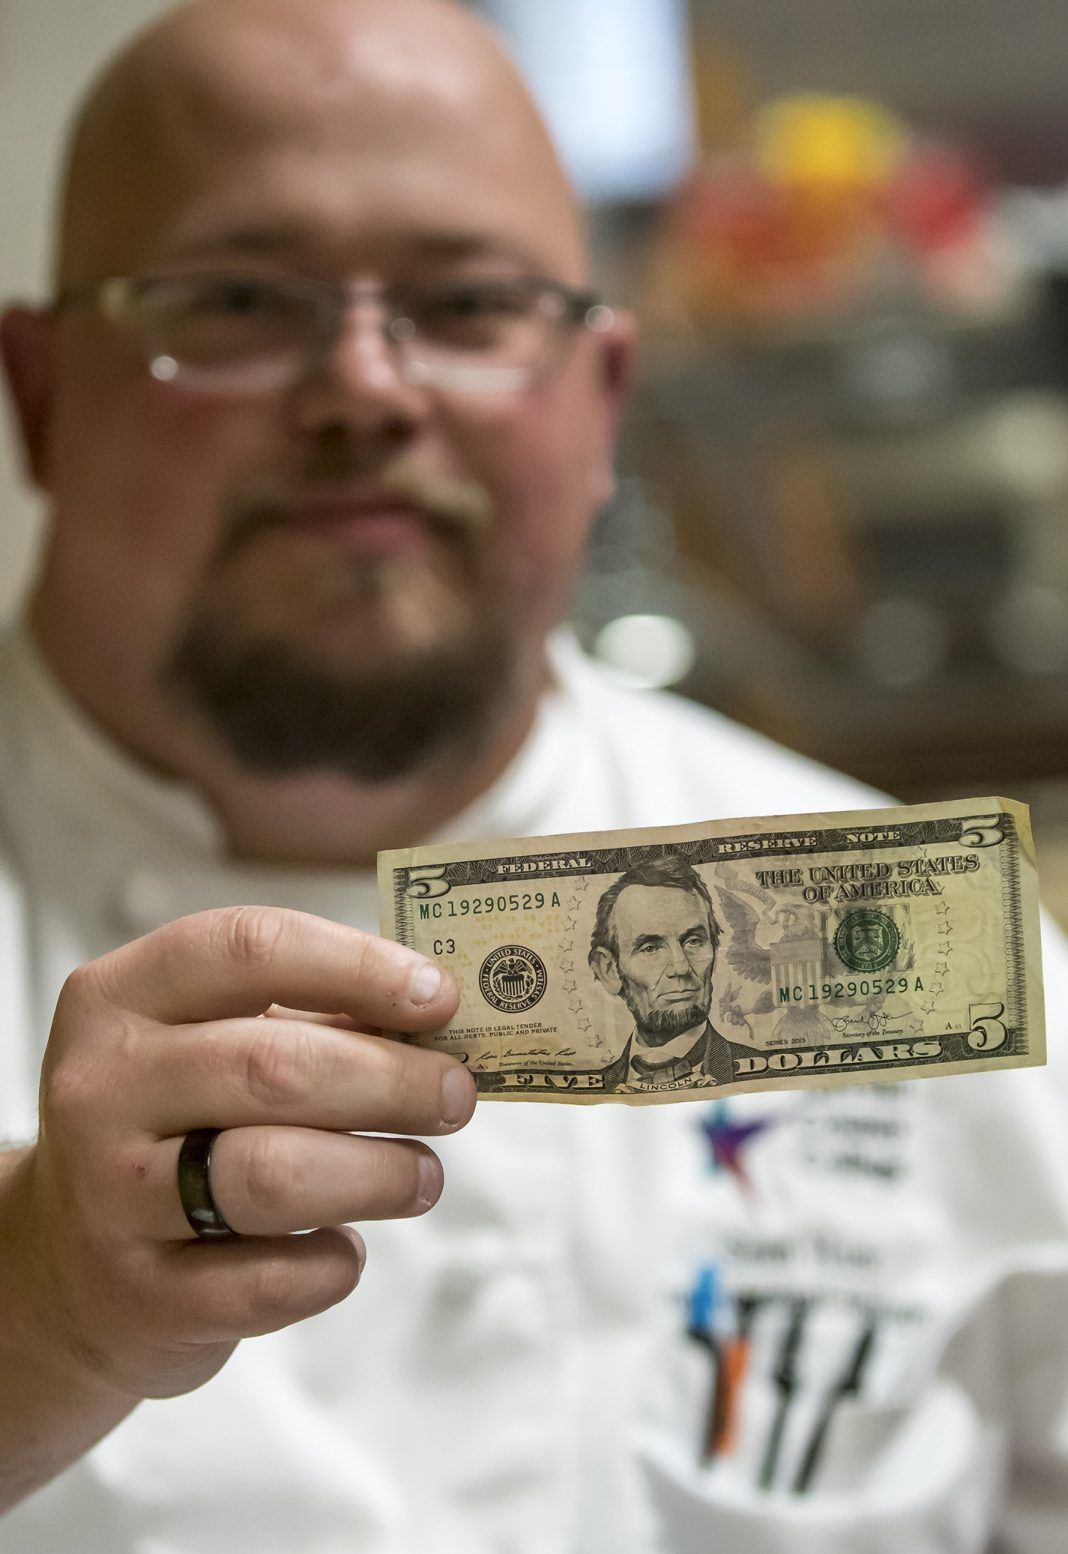 SE culinary arts instructional assistant Sean Hunt holds a $5 bill, which will buy a lunch prepared by the program.